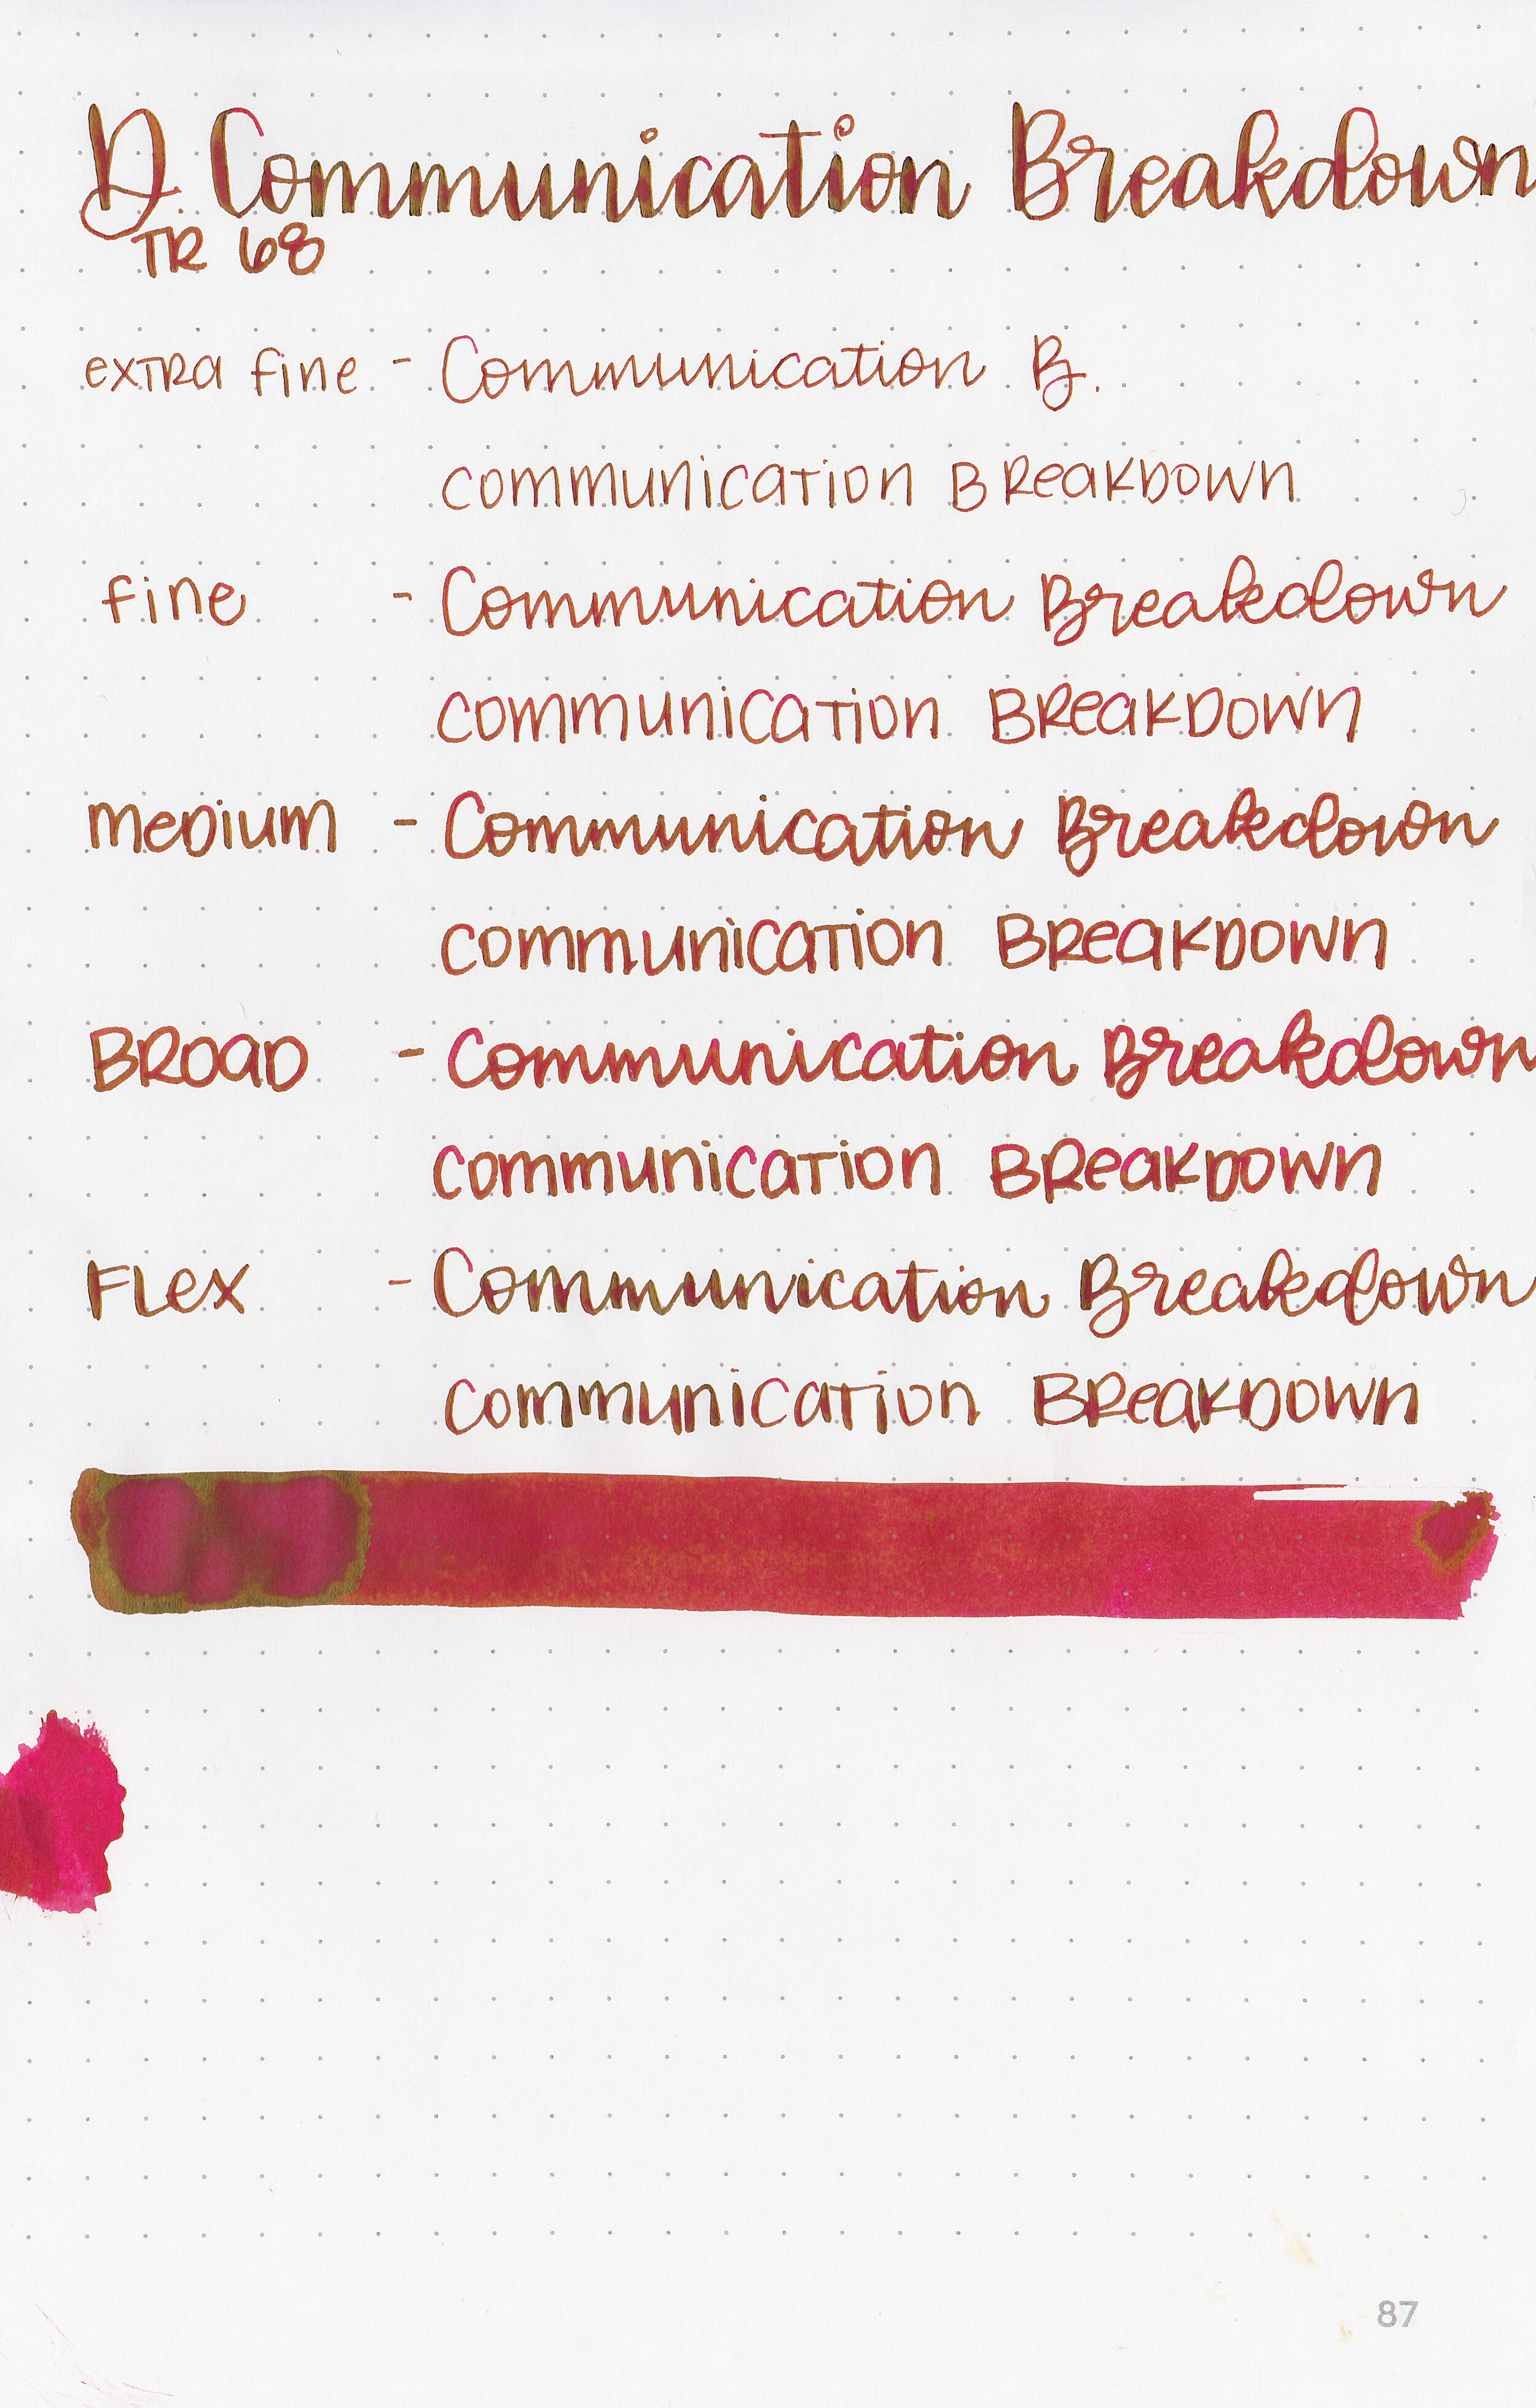 d-communication-breakdown-5.jpg